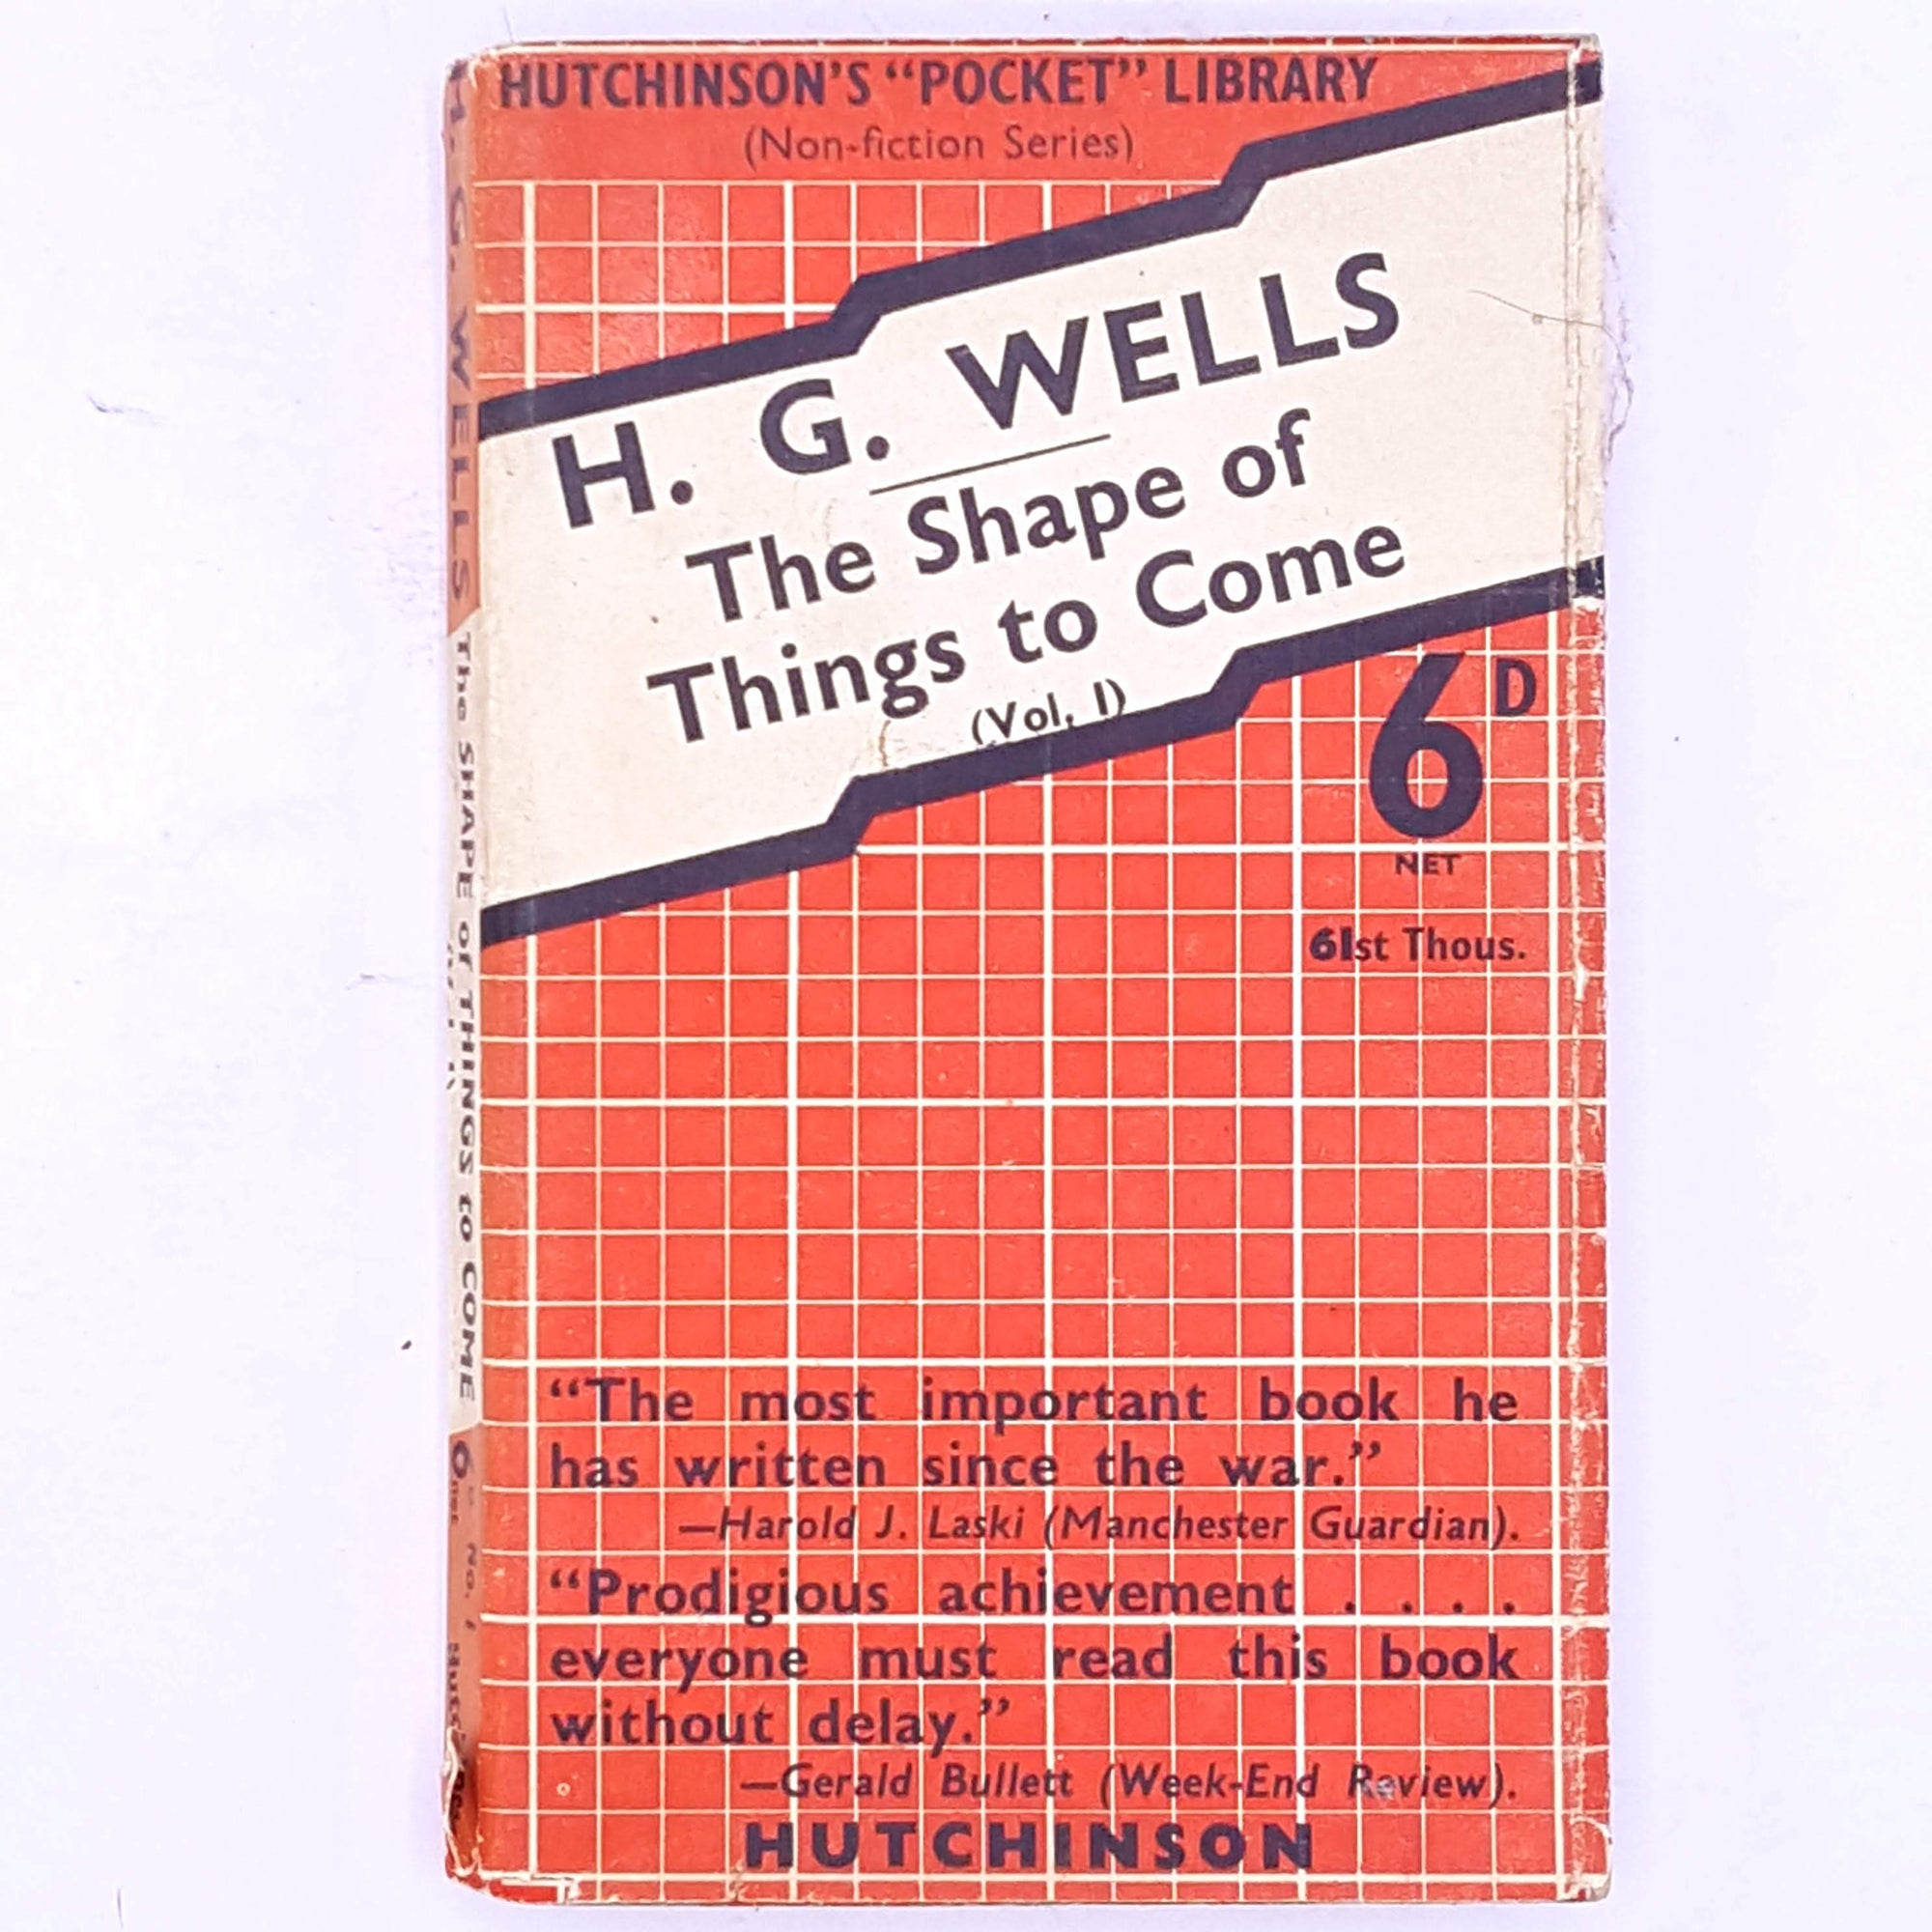 H.G. Wells, The Shape of Things to Come Volume 1